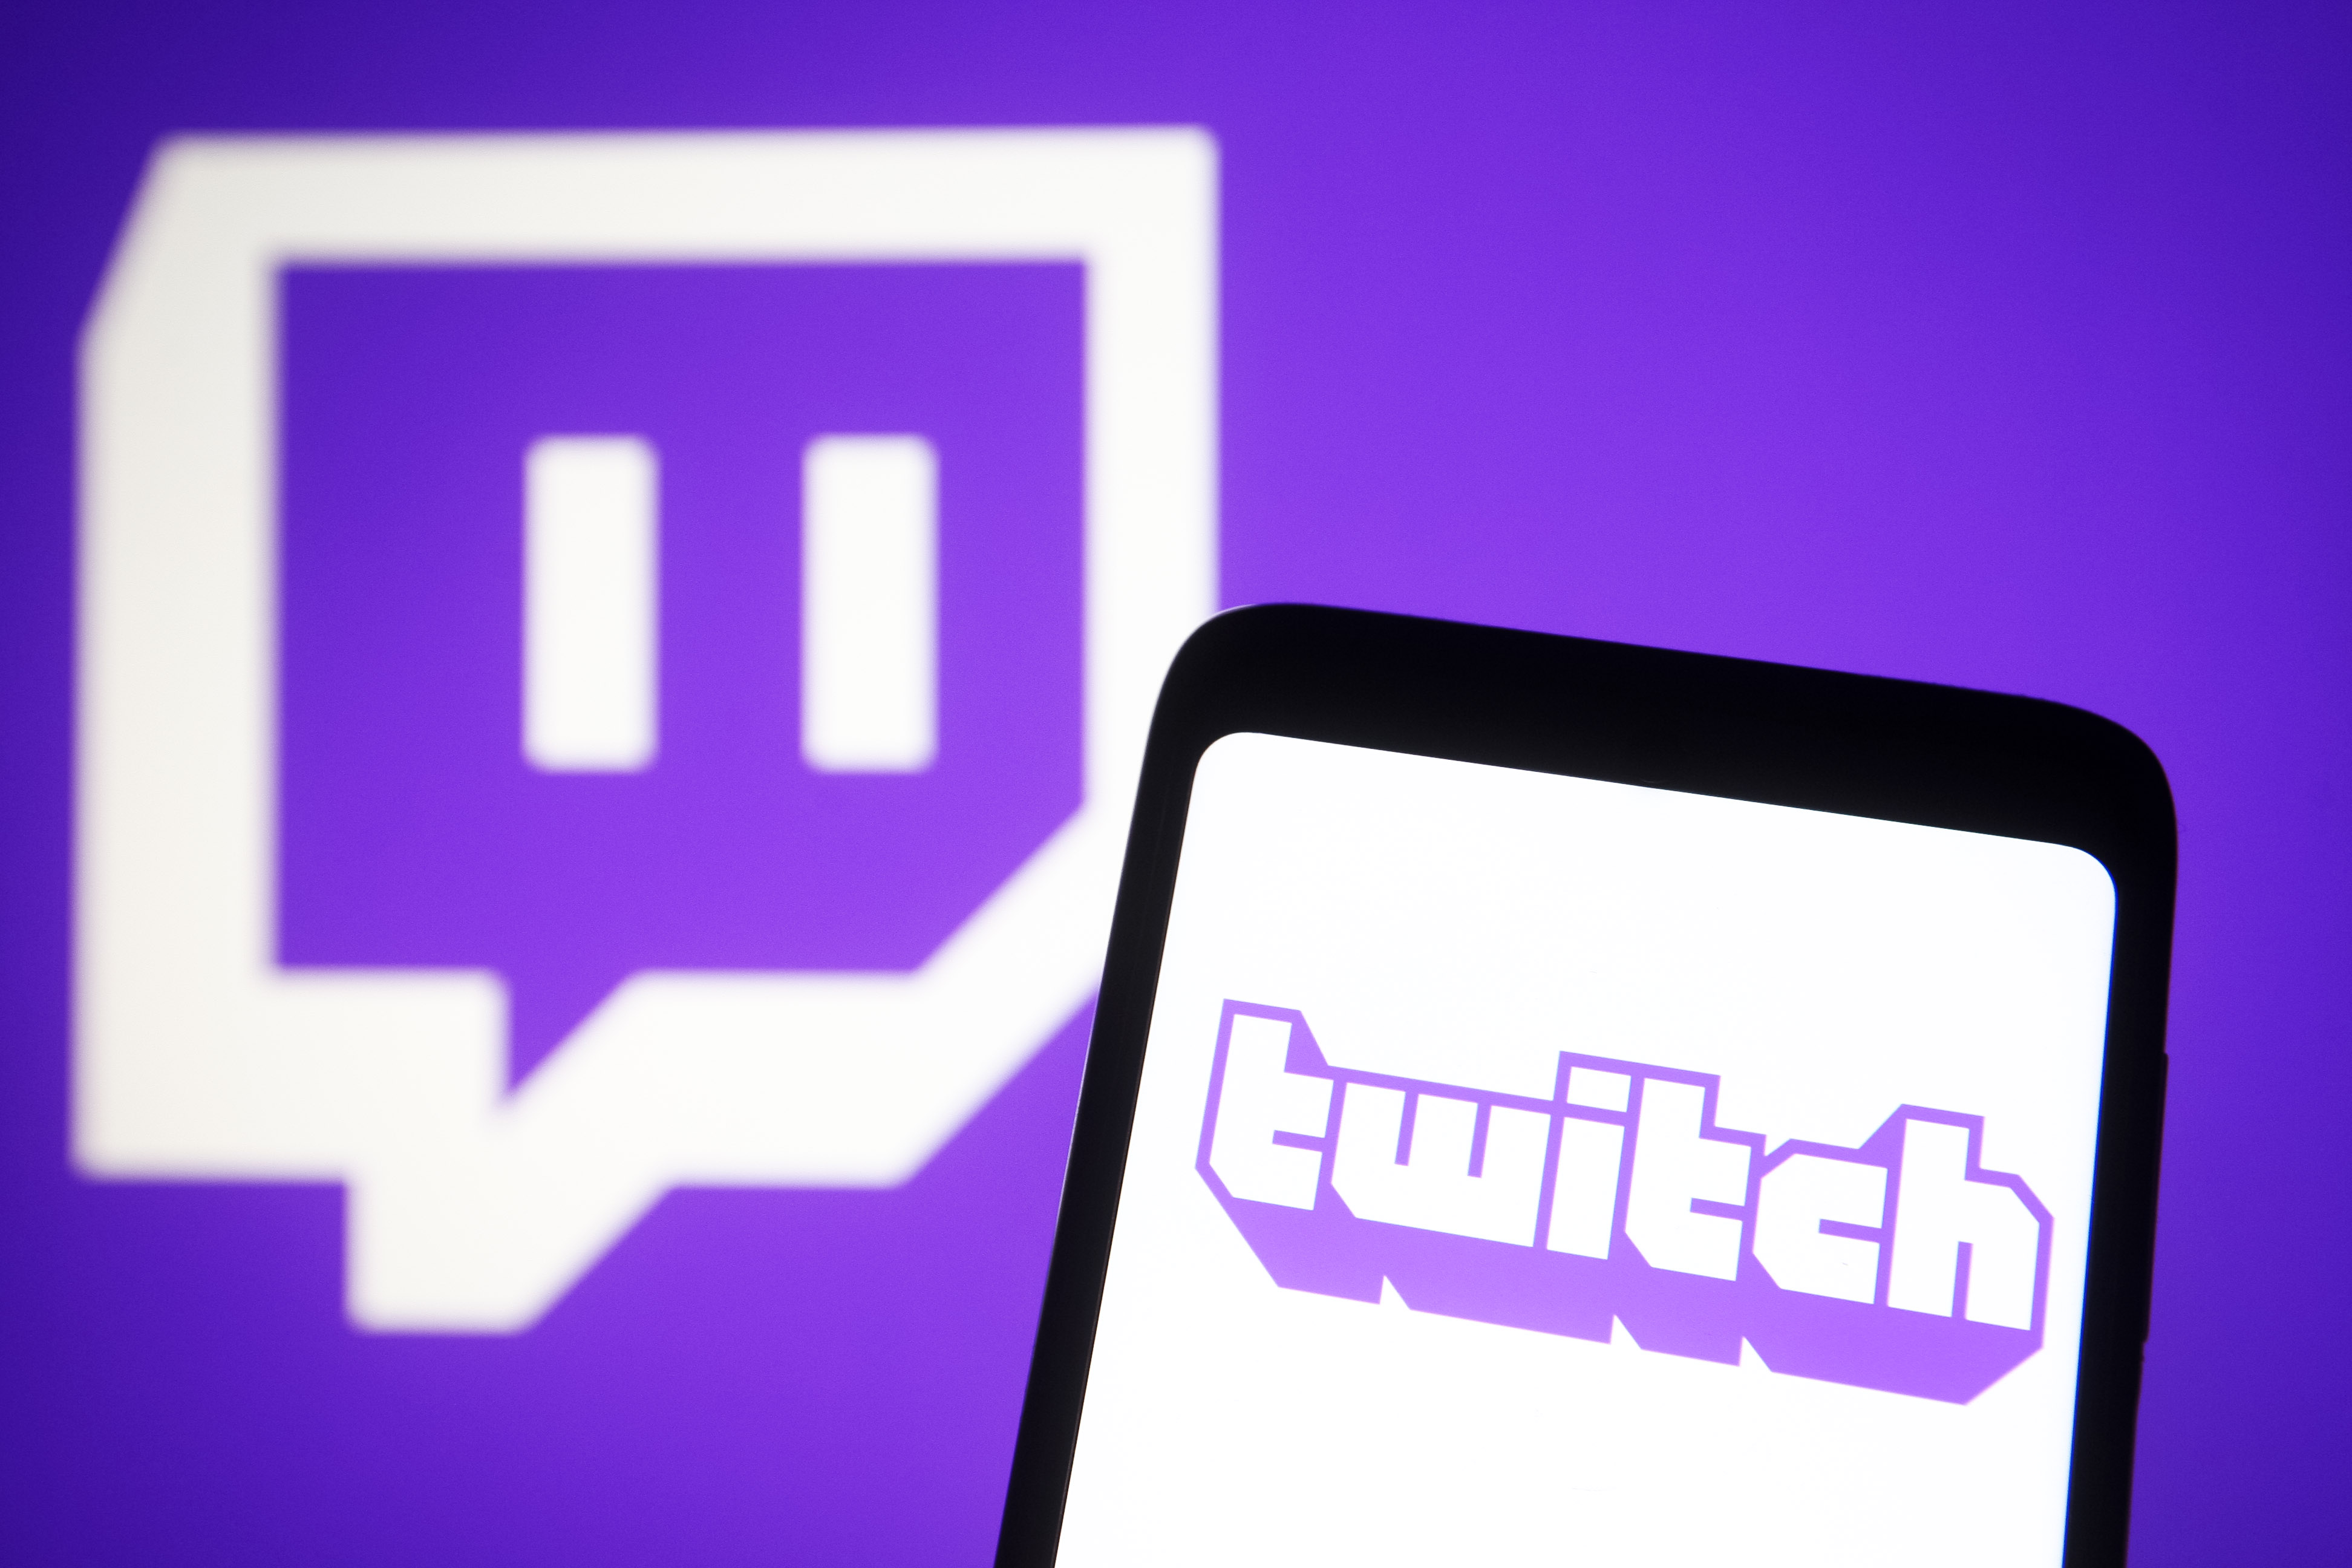 Your favorite Twitch streamer might be taking a break tomorrow